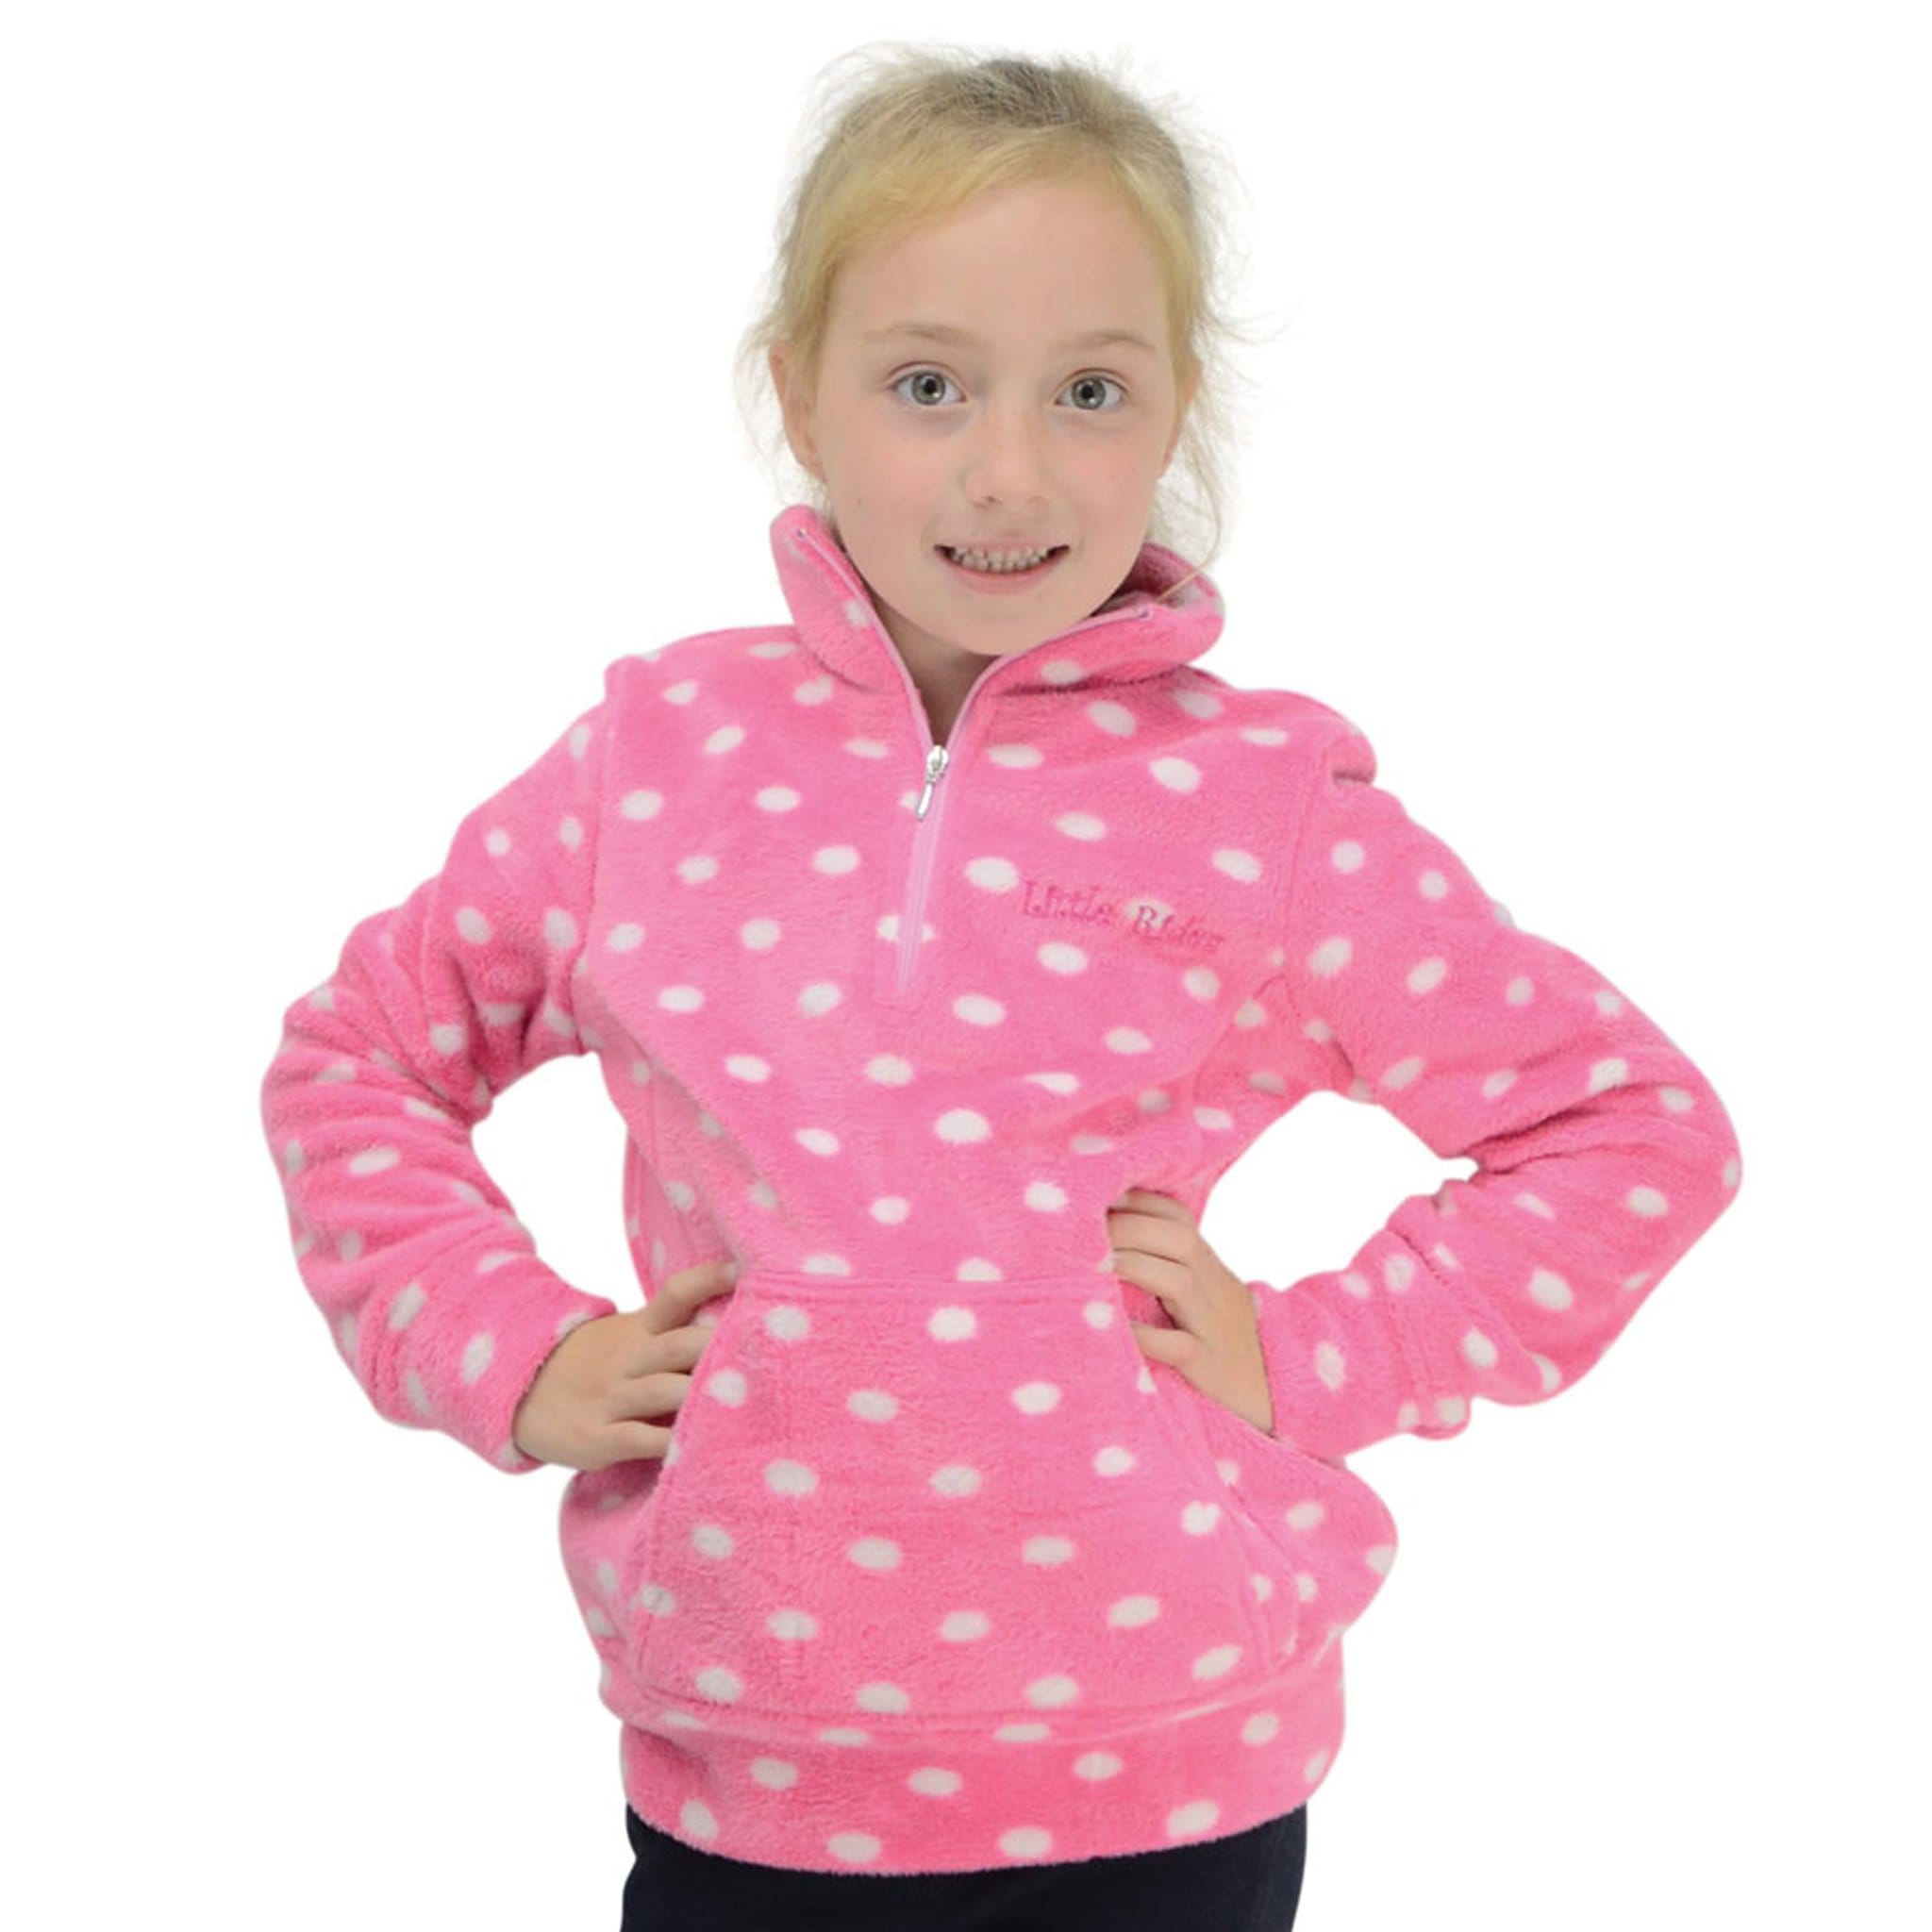 Hy Childrens Little Rider Lily Soft Fleece 15695.